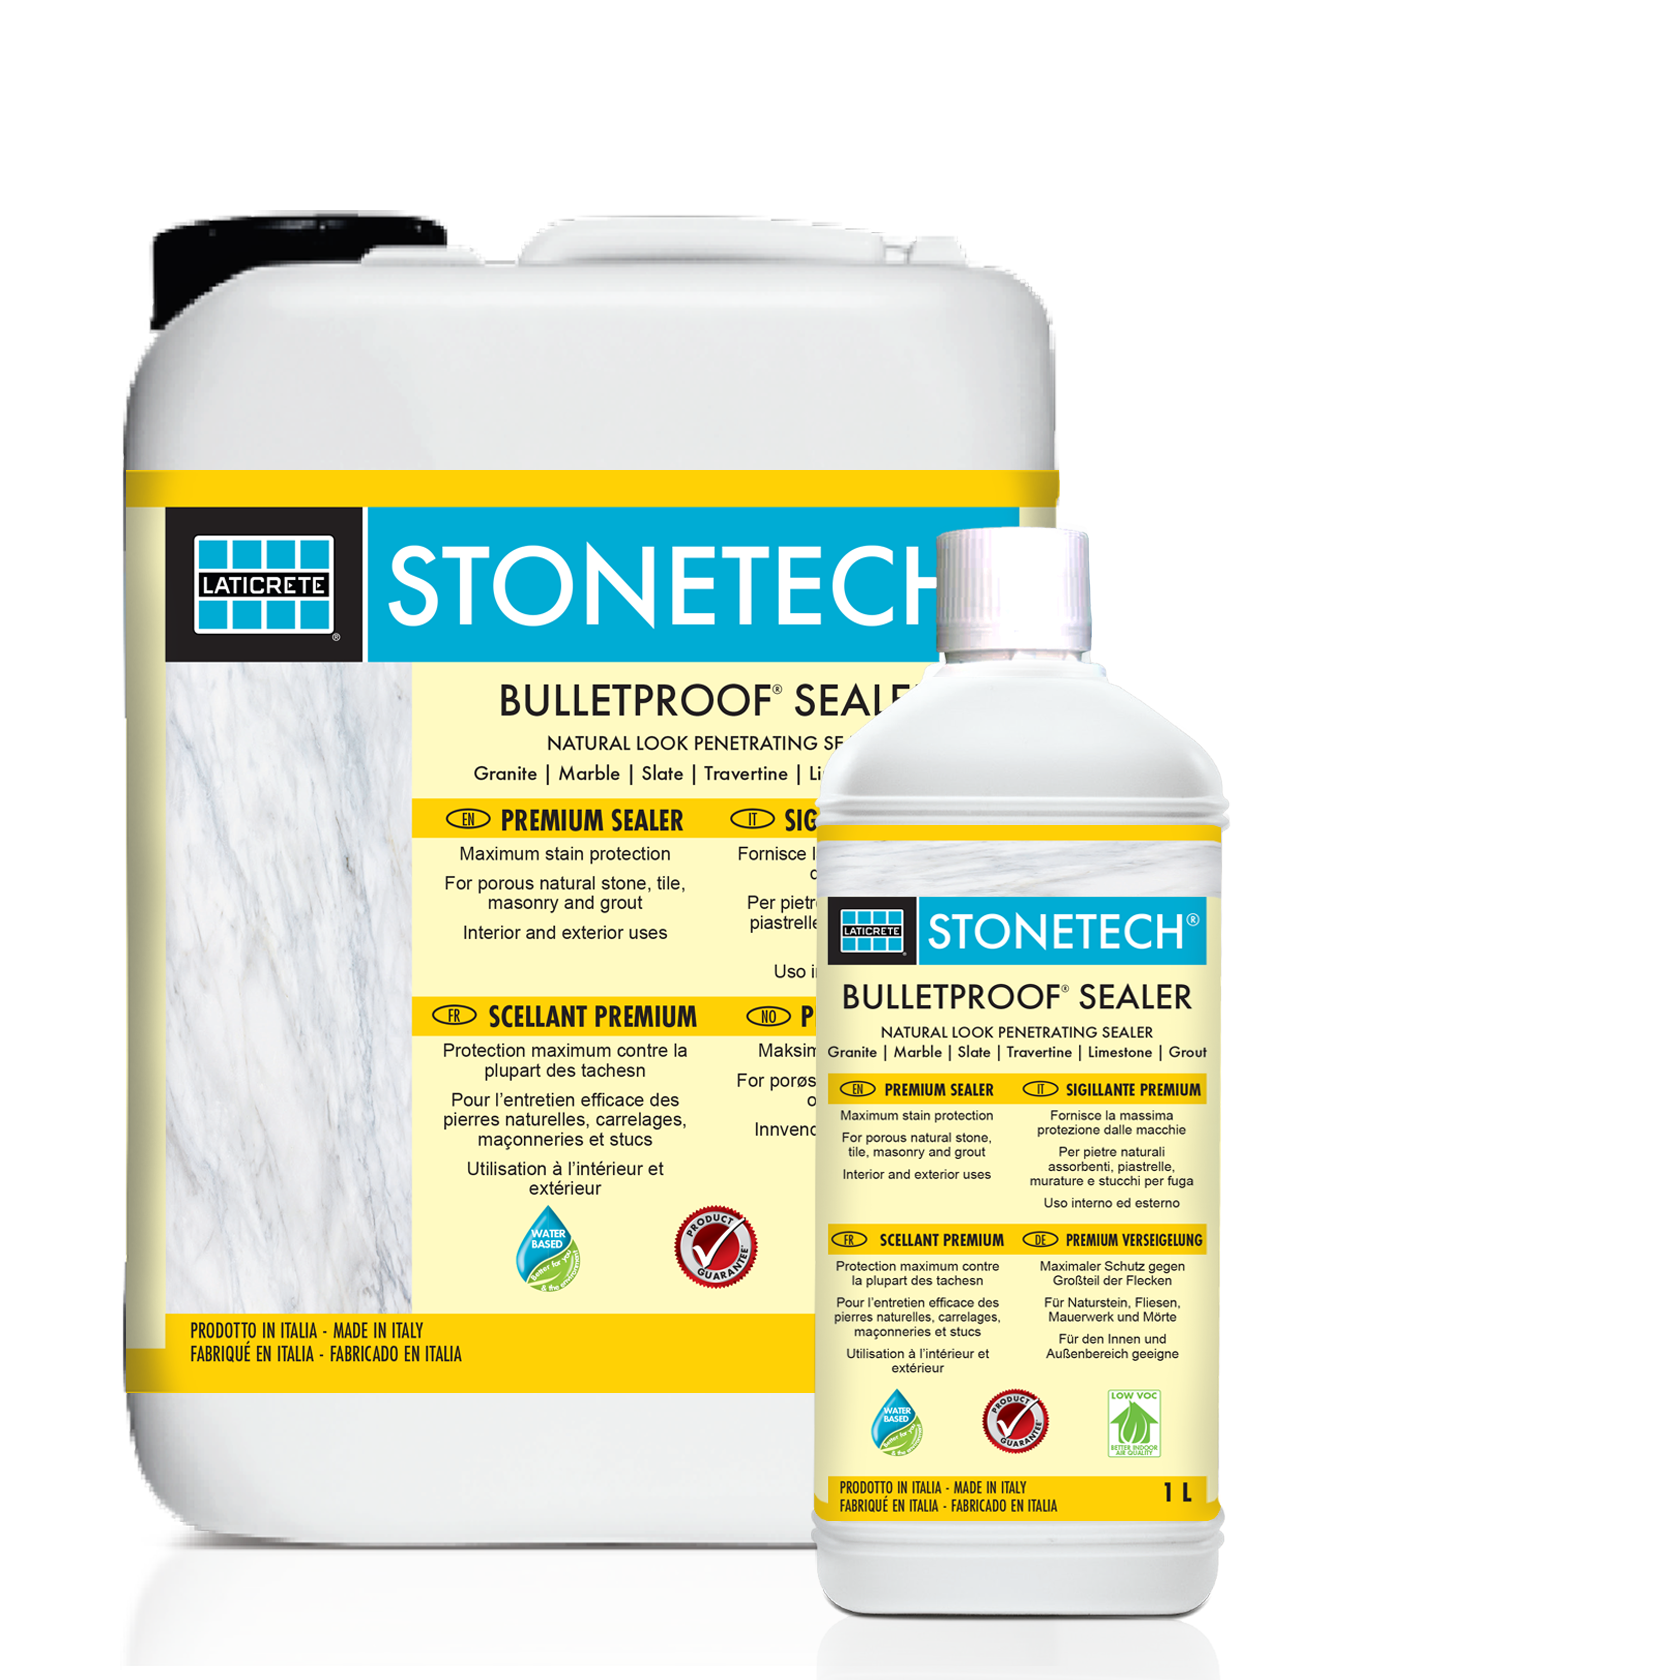 STONETECH Bulletproof Sealer Grouping